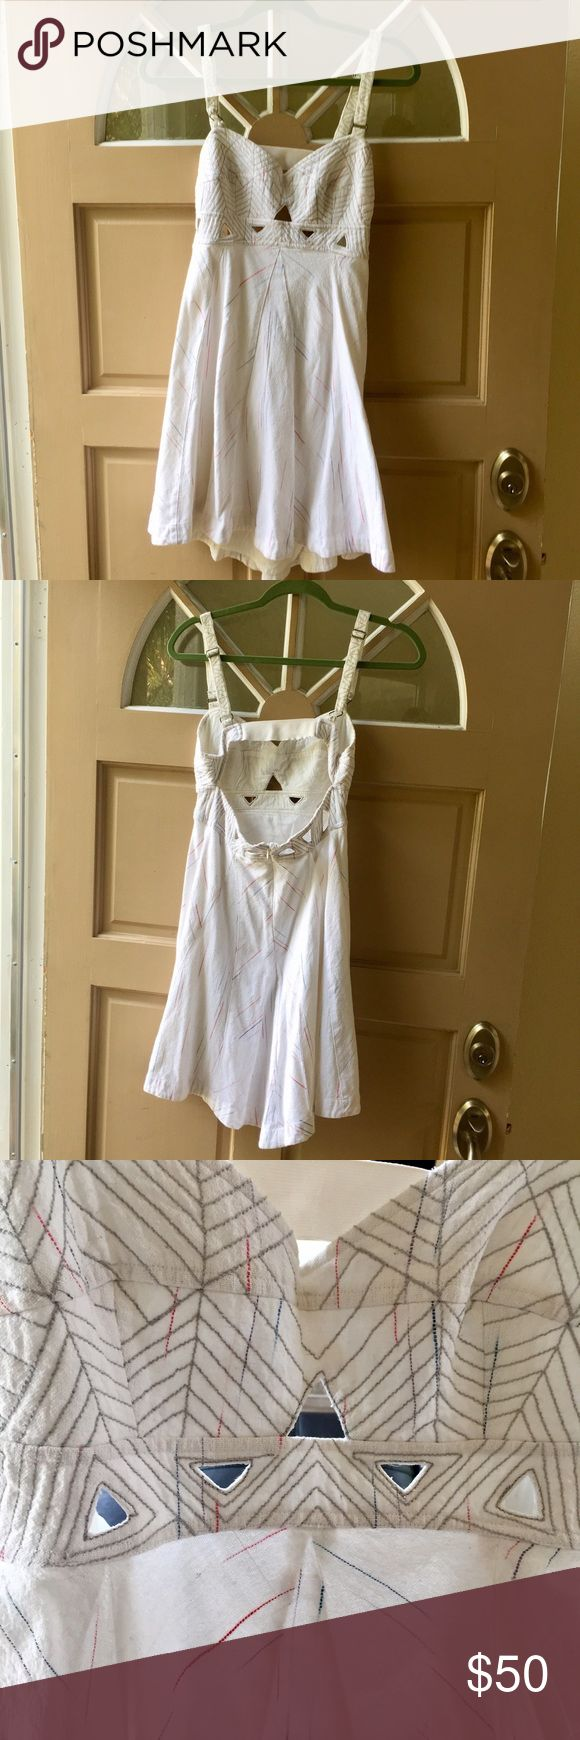 Free people white dress Free people New Romantics dress. No trades. 🤗offers accepted when a bundle order is created. Free People Dresses Mini